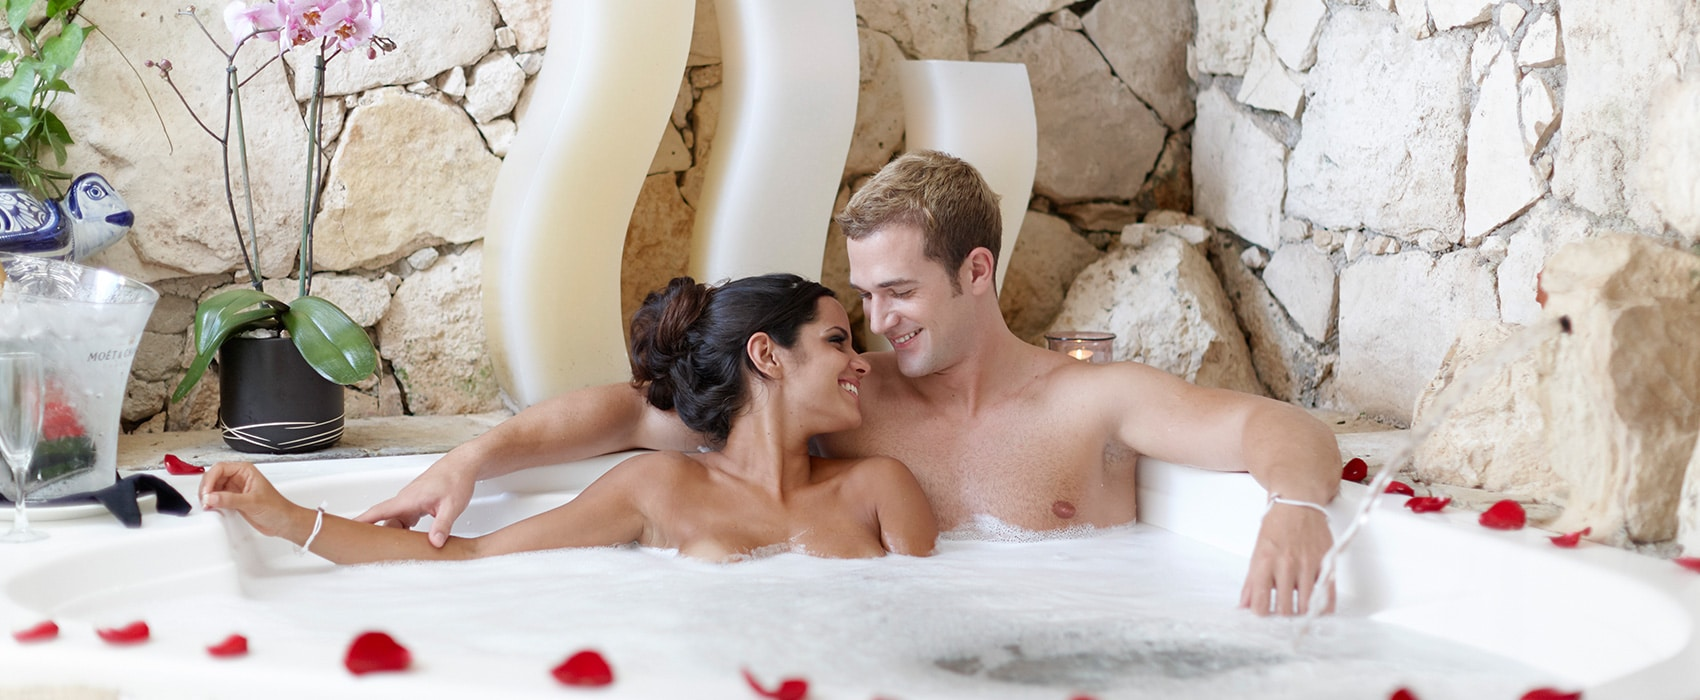 All inclusive Spa Resorts | Hoteles solo para parejas